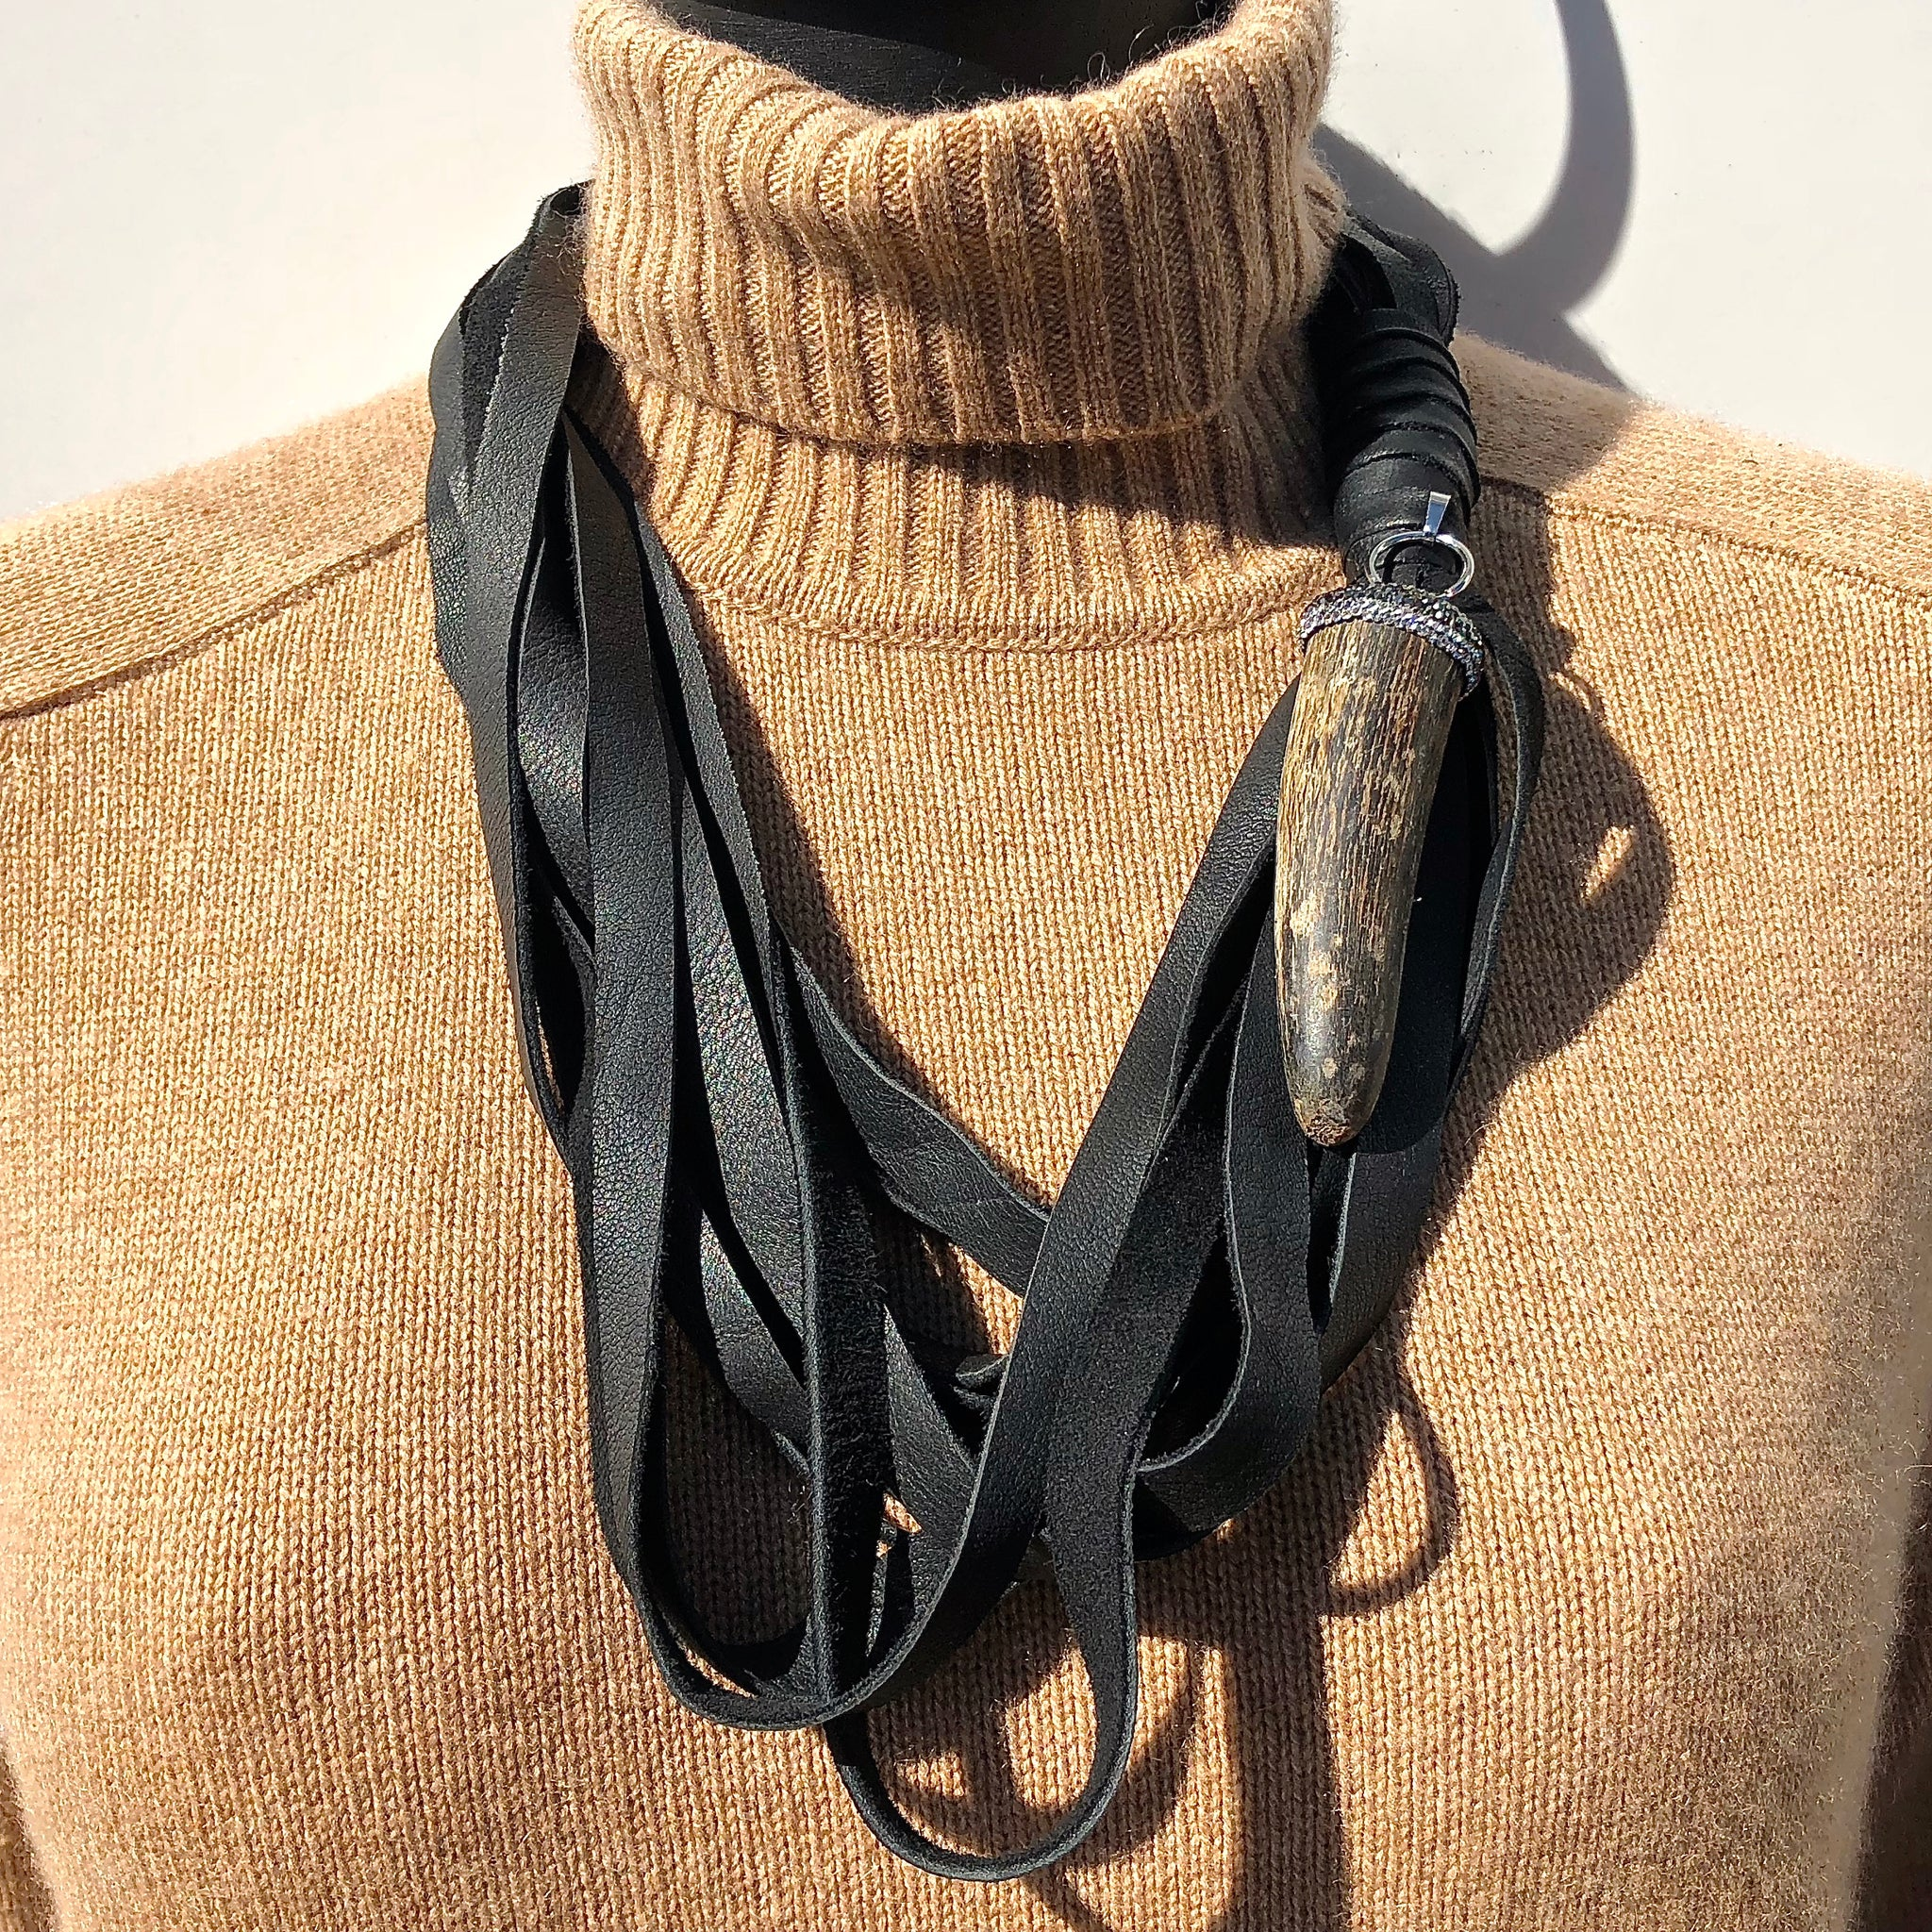 MULTI STRAND DEERSKIN LEATHER NECKLACE WITH PAVE RHINESTONE AND HORN PENDENT. by NYET Jewelry